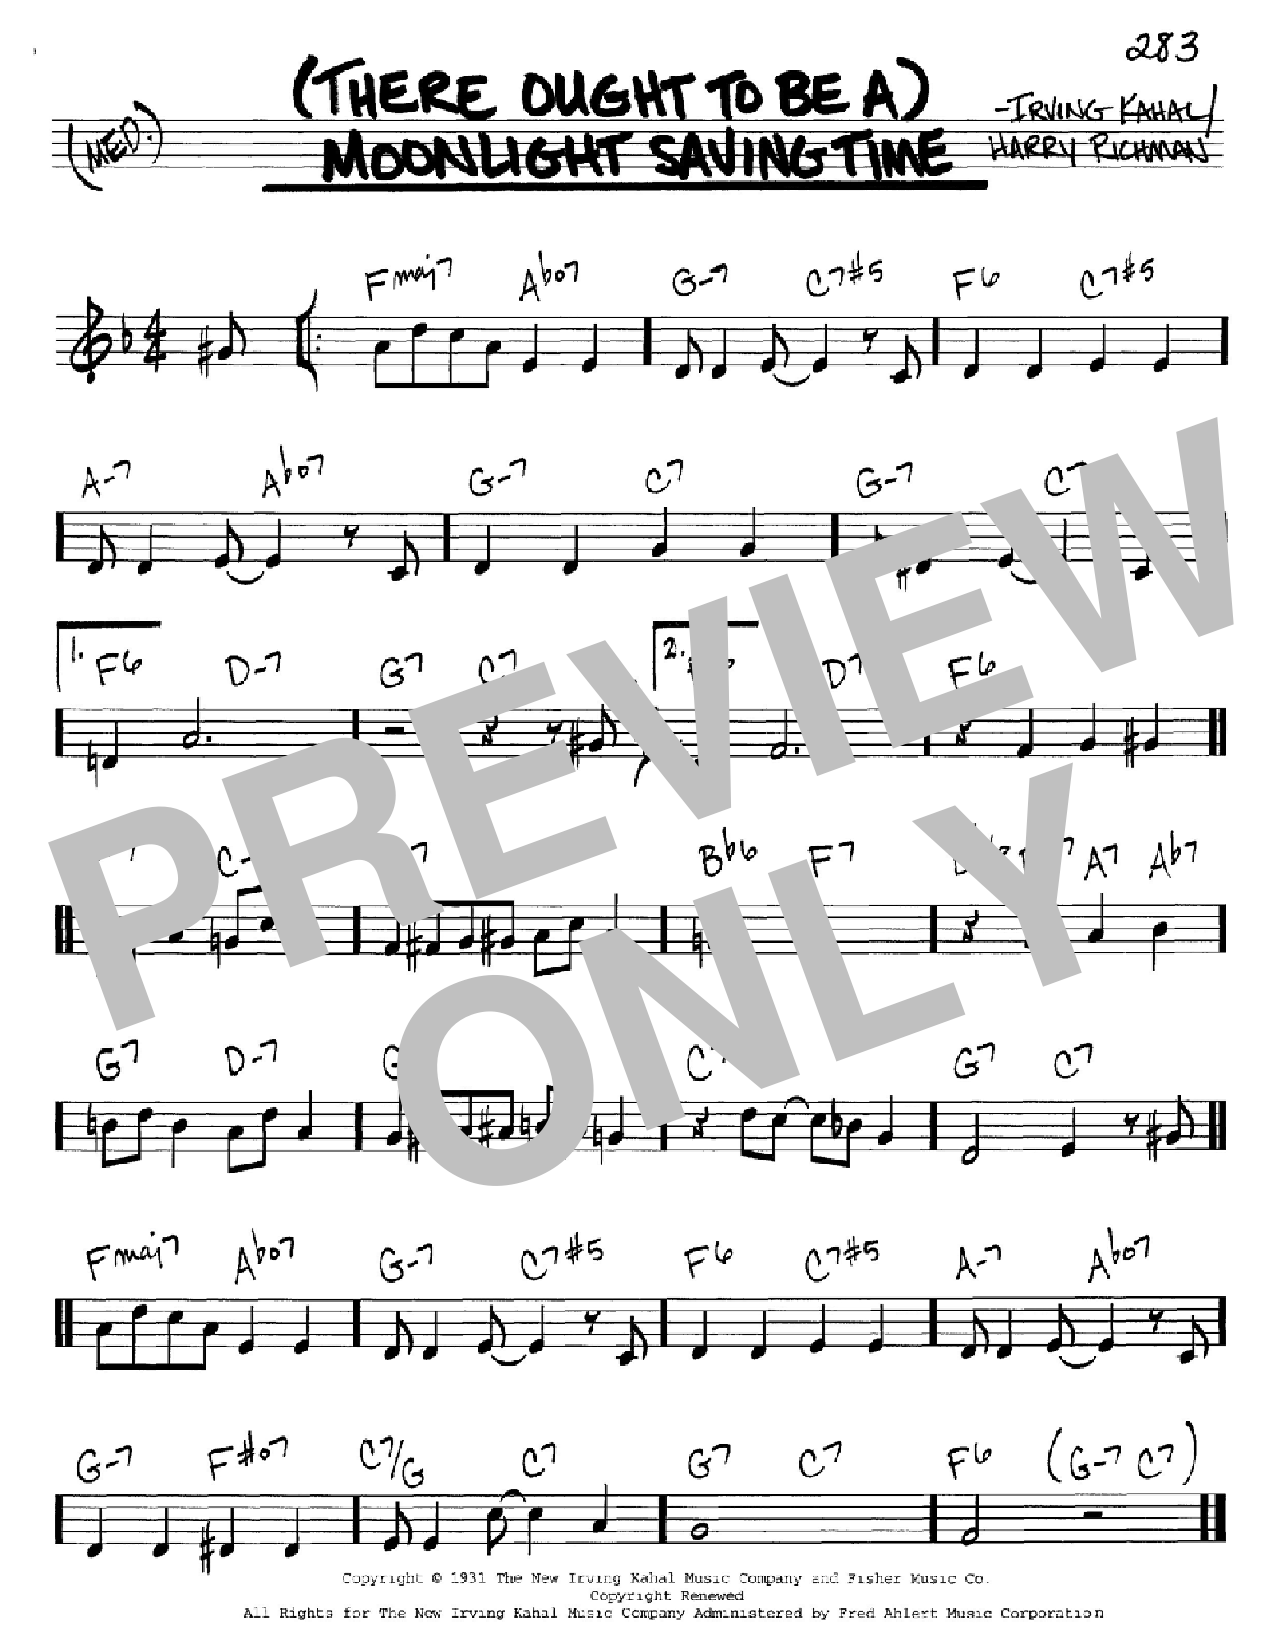 (There Ought To Be A) Moonlight Savings Time Sheet Music